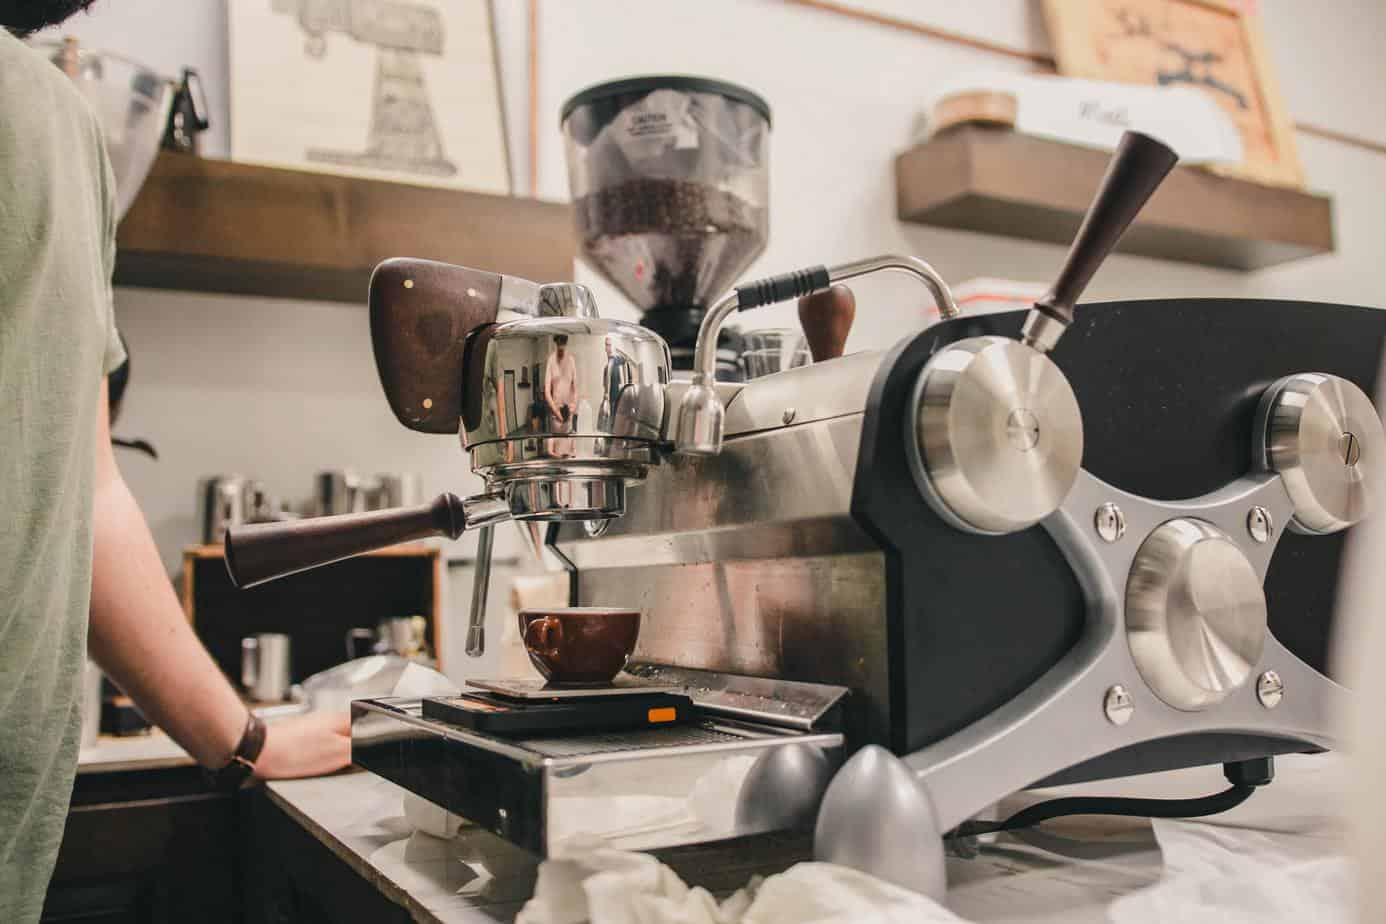 commercial coffee machine | Photo by William Moreland on Unsplash